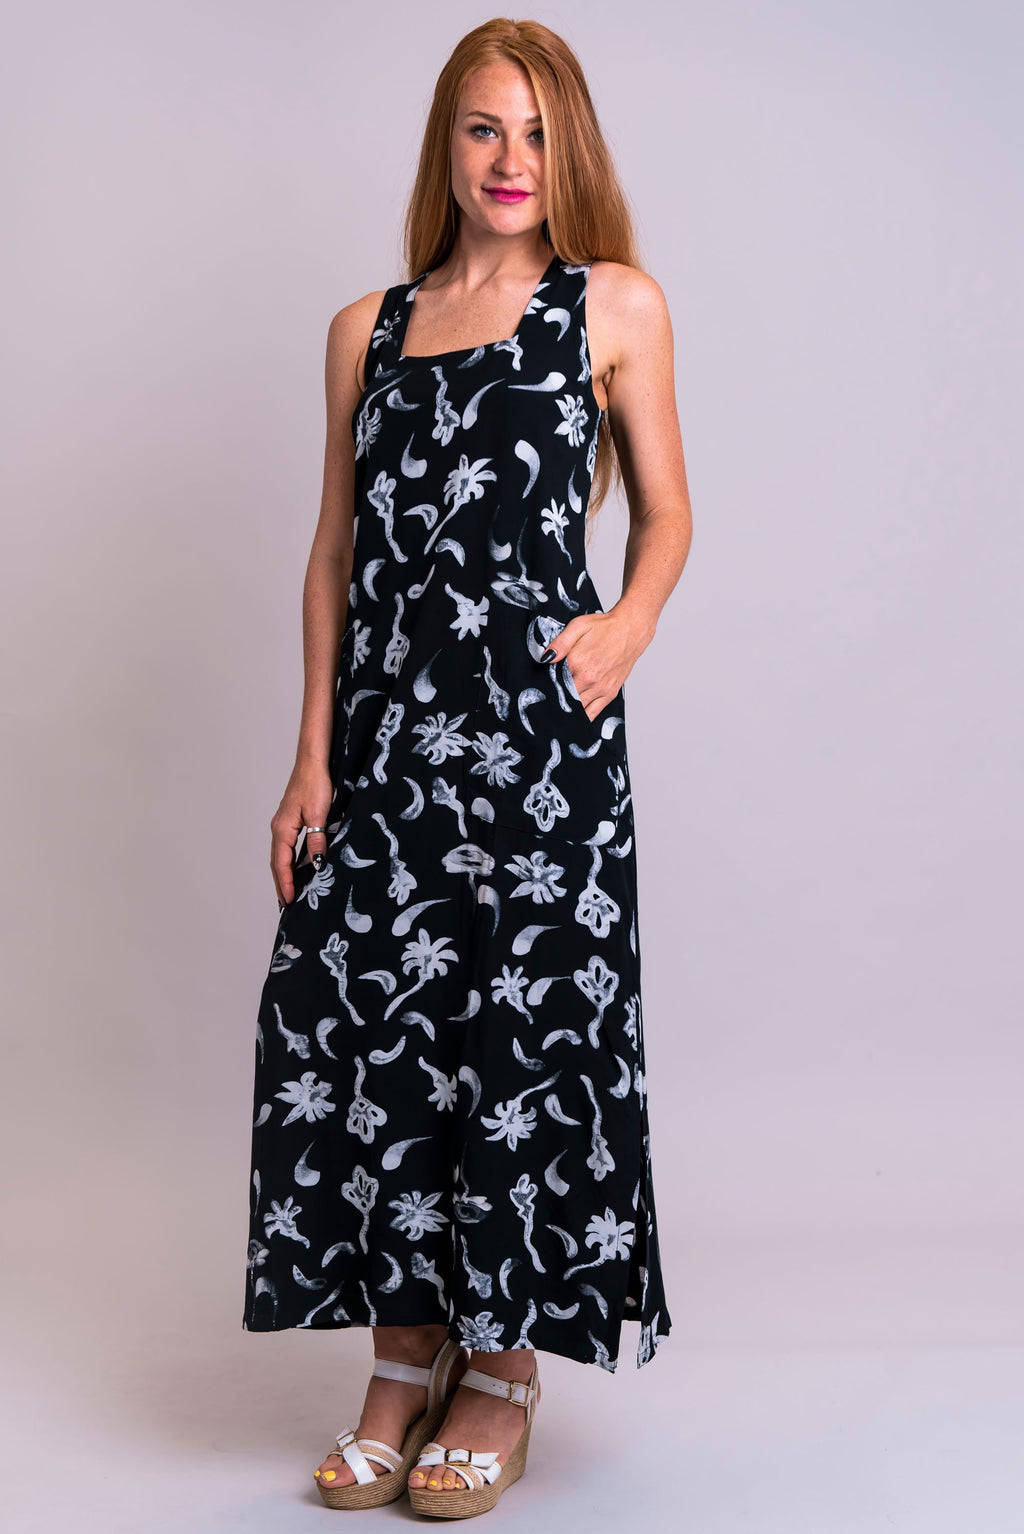 Maddie Dress, Flower Garden, Batik Art - Blue Sky Clothing Co